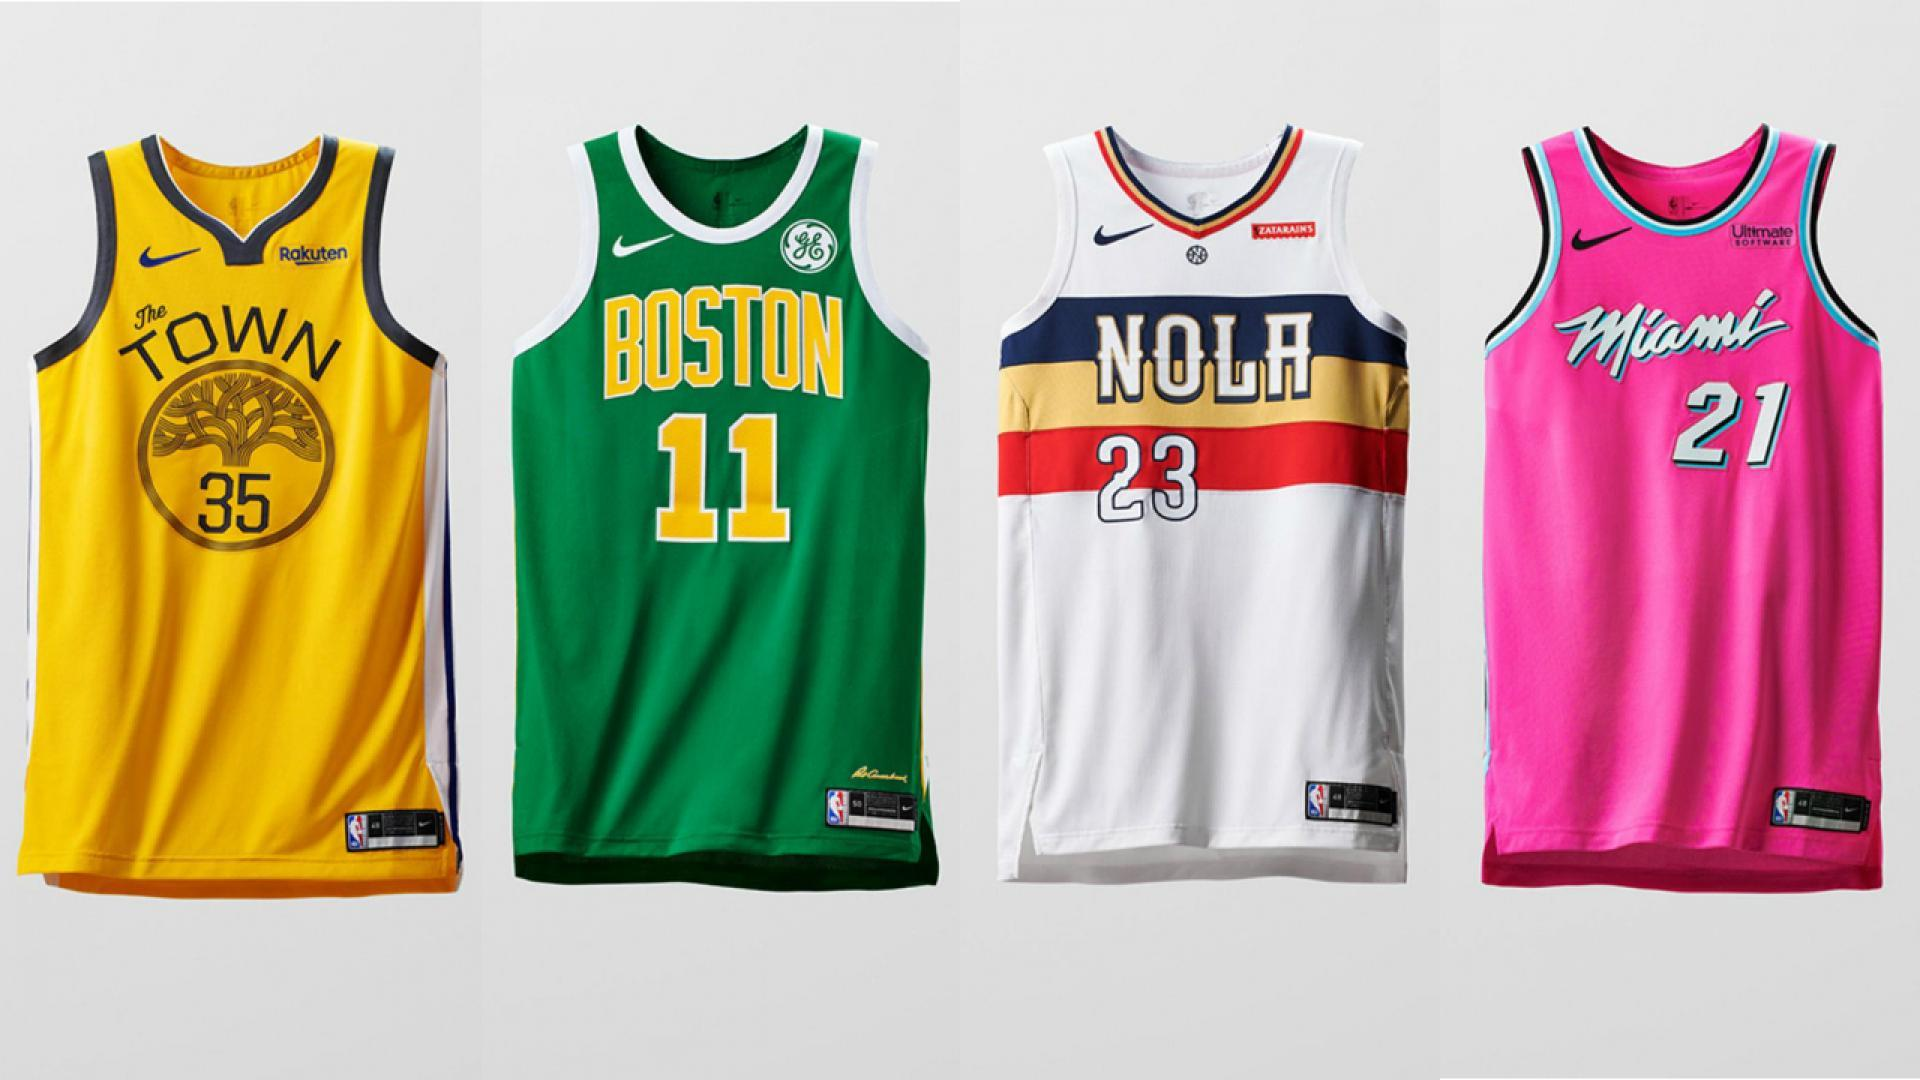 Teams unveil Earned Edition uniforms for 2018-19 season  9b2b717f2